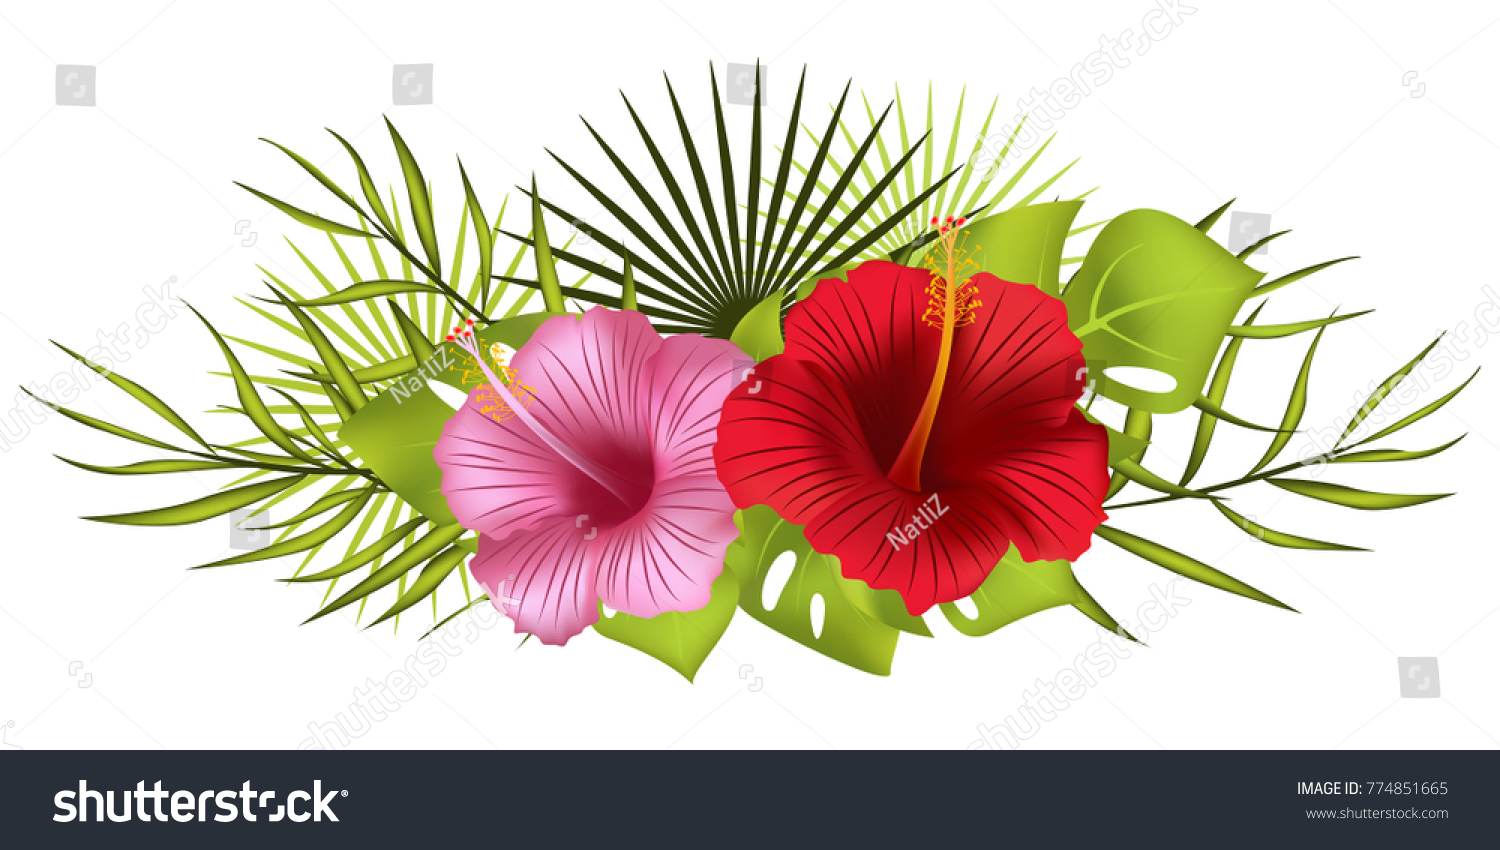 Tropical flowers bouquet hibiscus exotic plants stock vector tropical flowers bouquet hibiscus exotic plants vector illustration izmirmasajfo